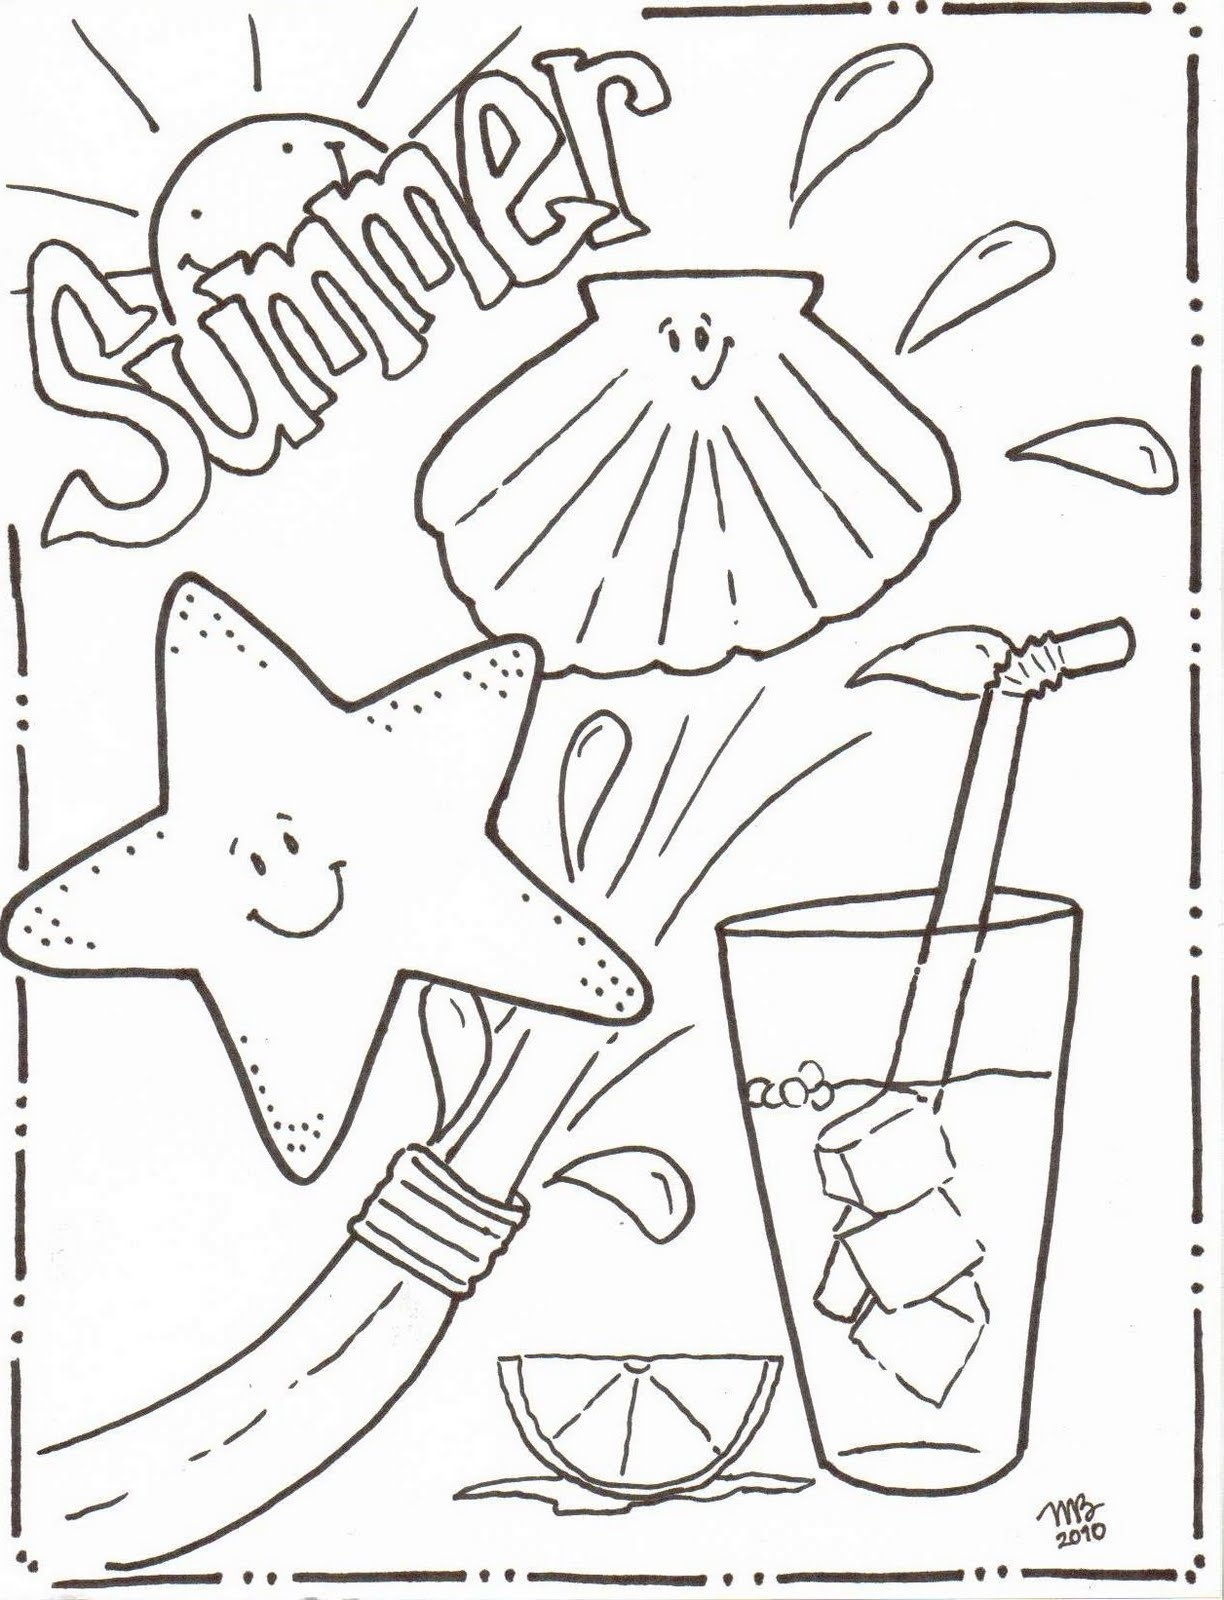 Coloring Pages : Indianer Coloring Pages For Adults Printable Modern - Summer Coloring Sheets Free Printable